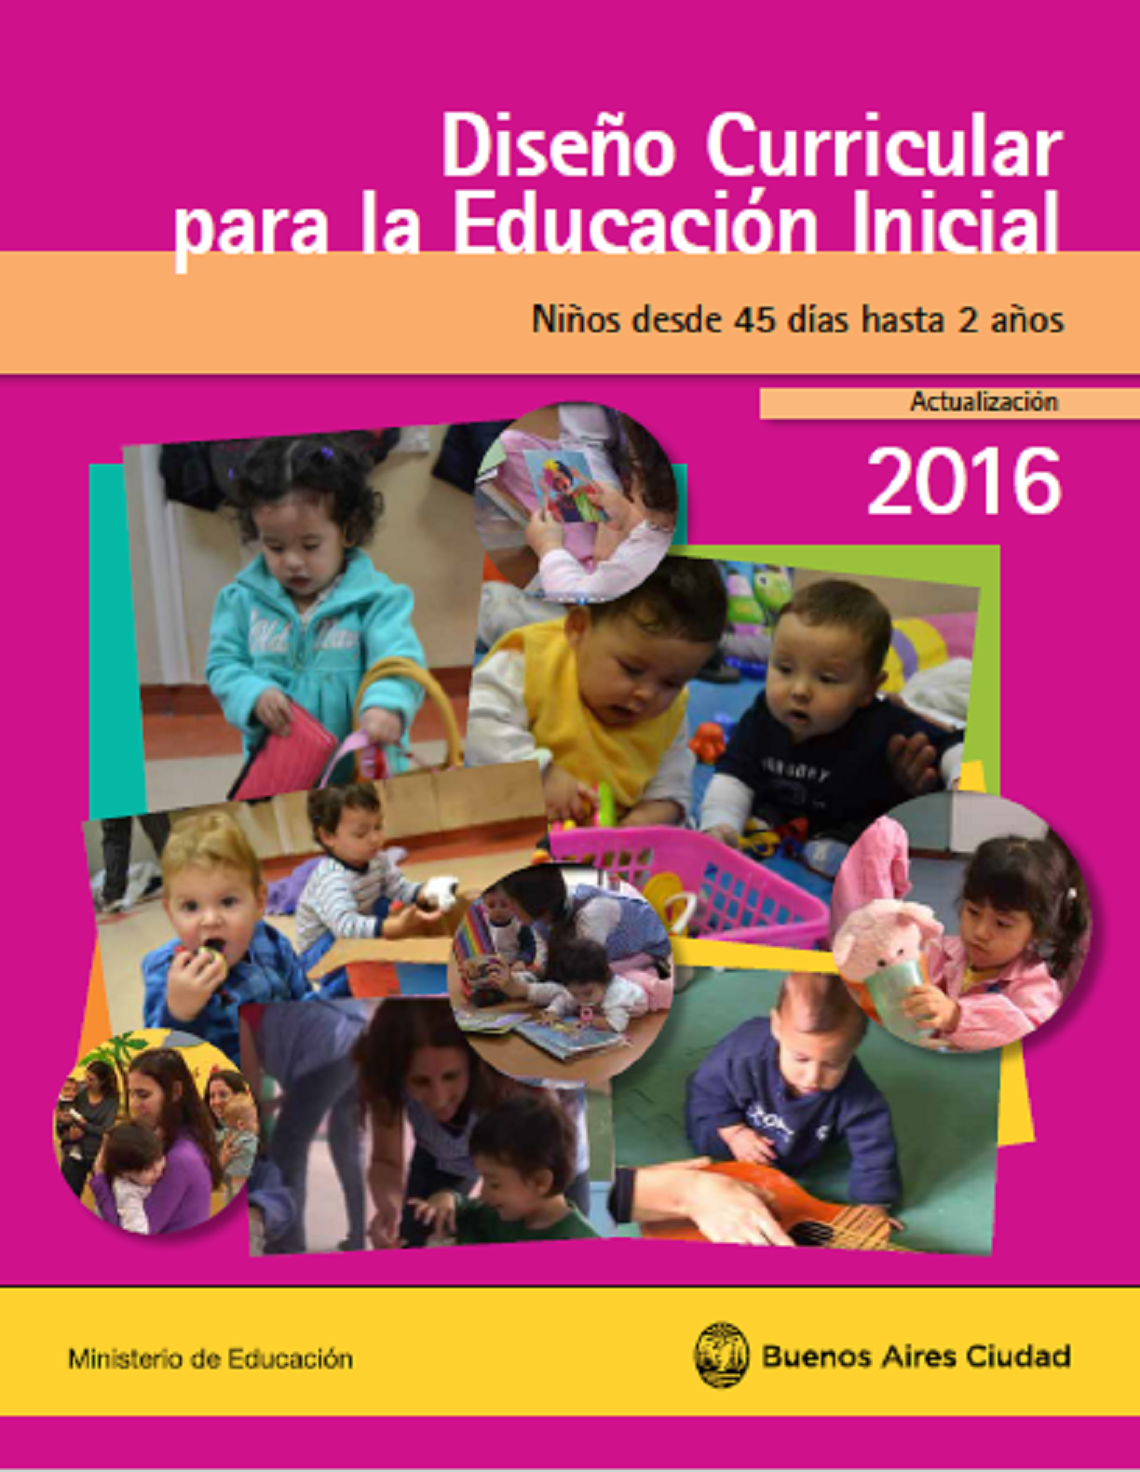 educaci n inicial c rdoba dise o curricular maternal On diseno curricular maternal